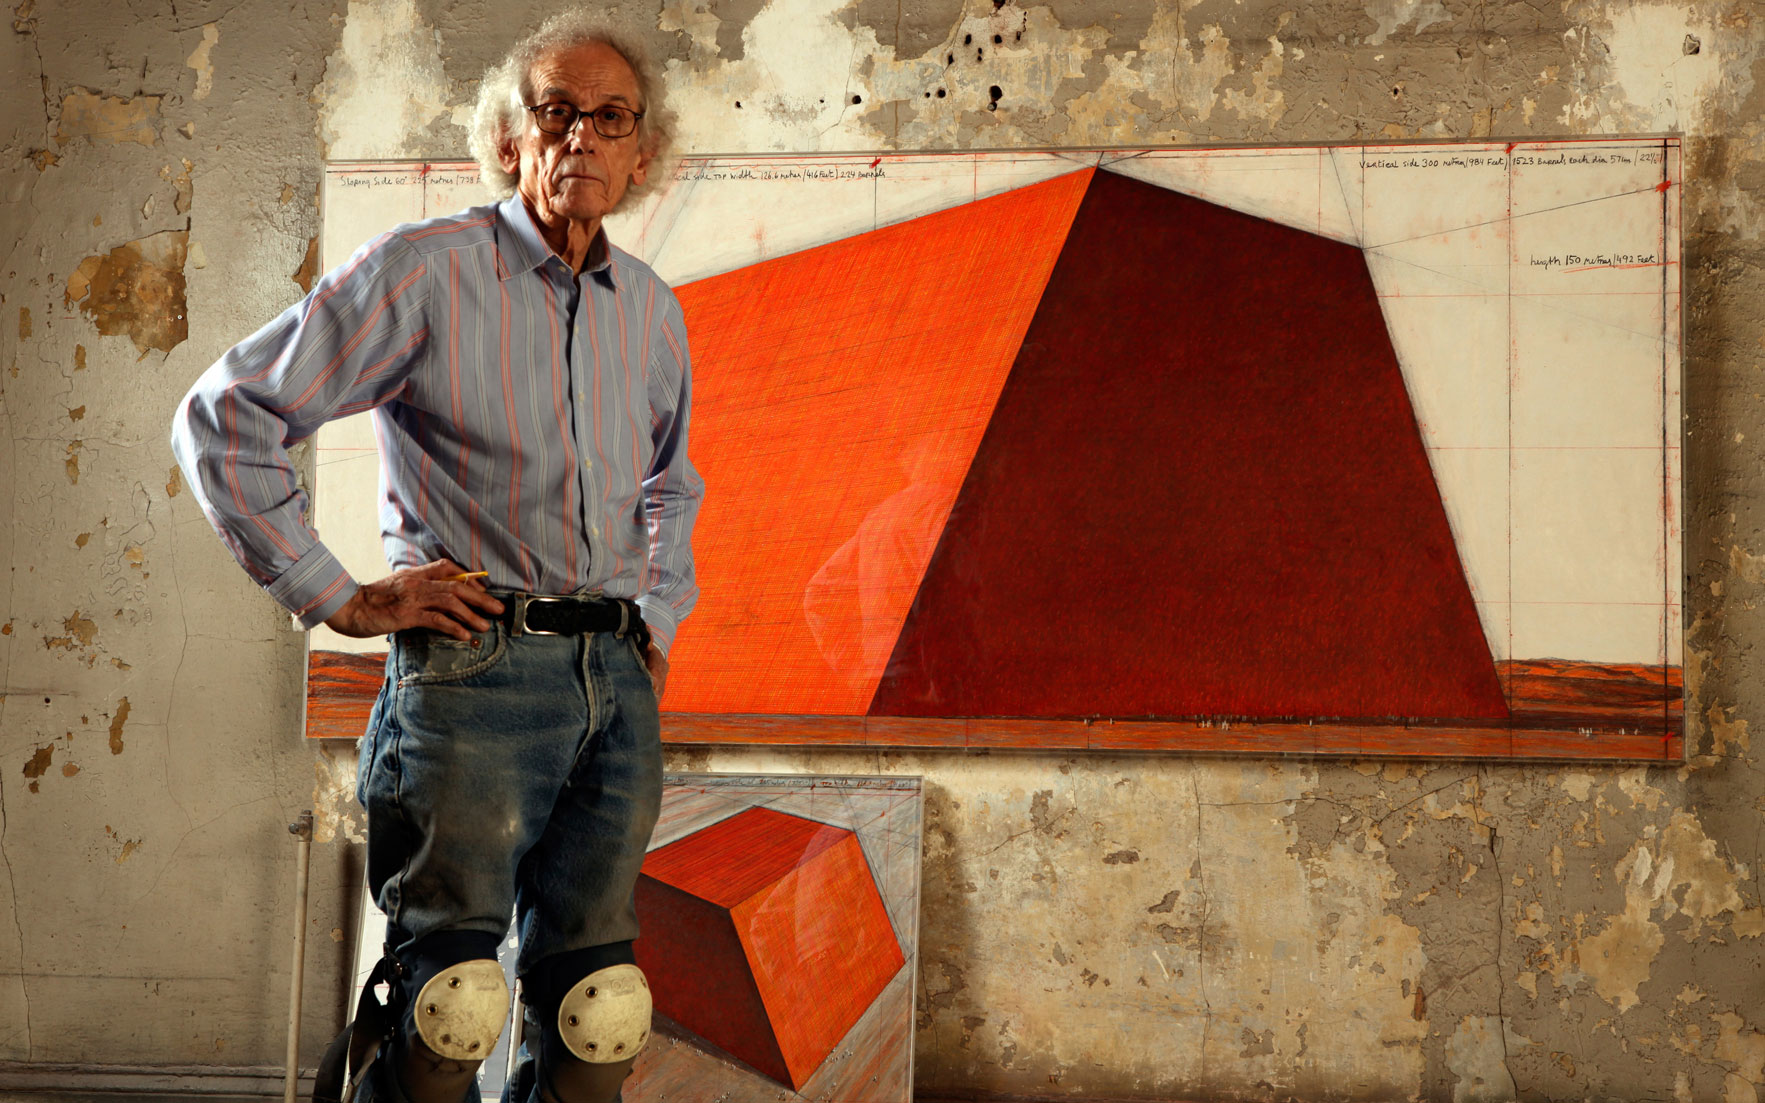 Christo. Photo Wolfgang Volz. Courtesy Serpentine Gallery. Christo & Jeanne-Claude Barrels and the Mastaba 1958-2018  is at Serpentine Gallery, London, from 19 June to 9 September